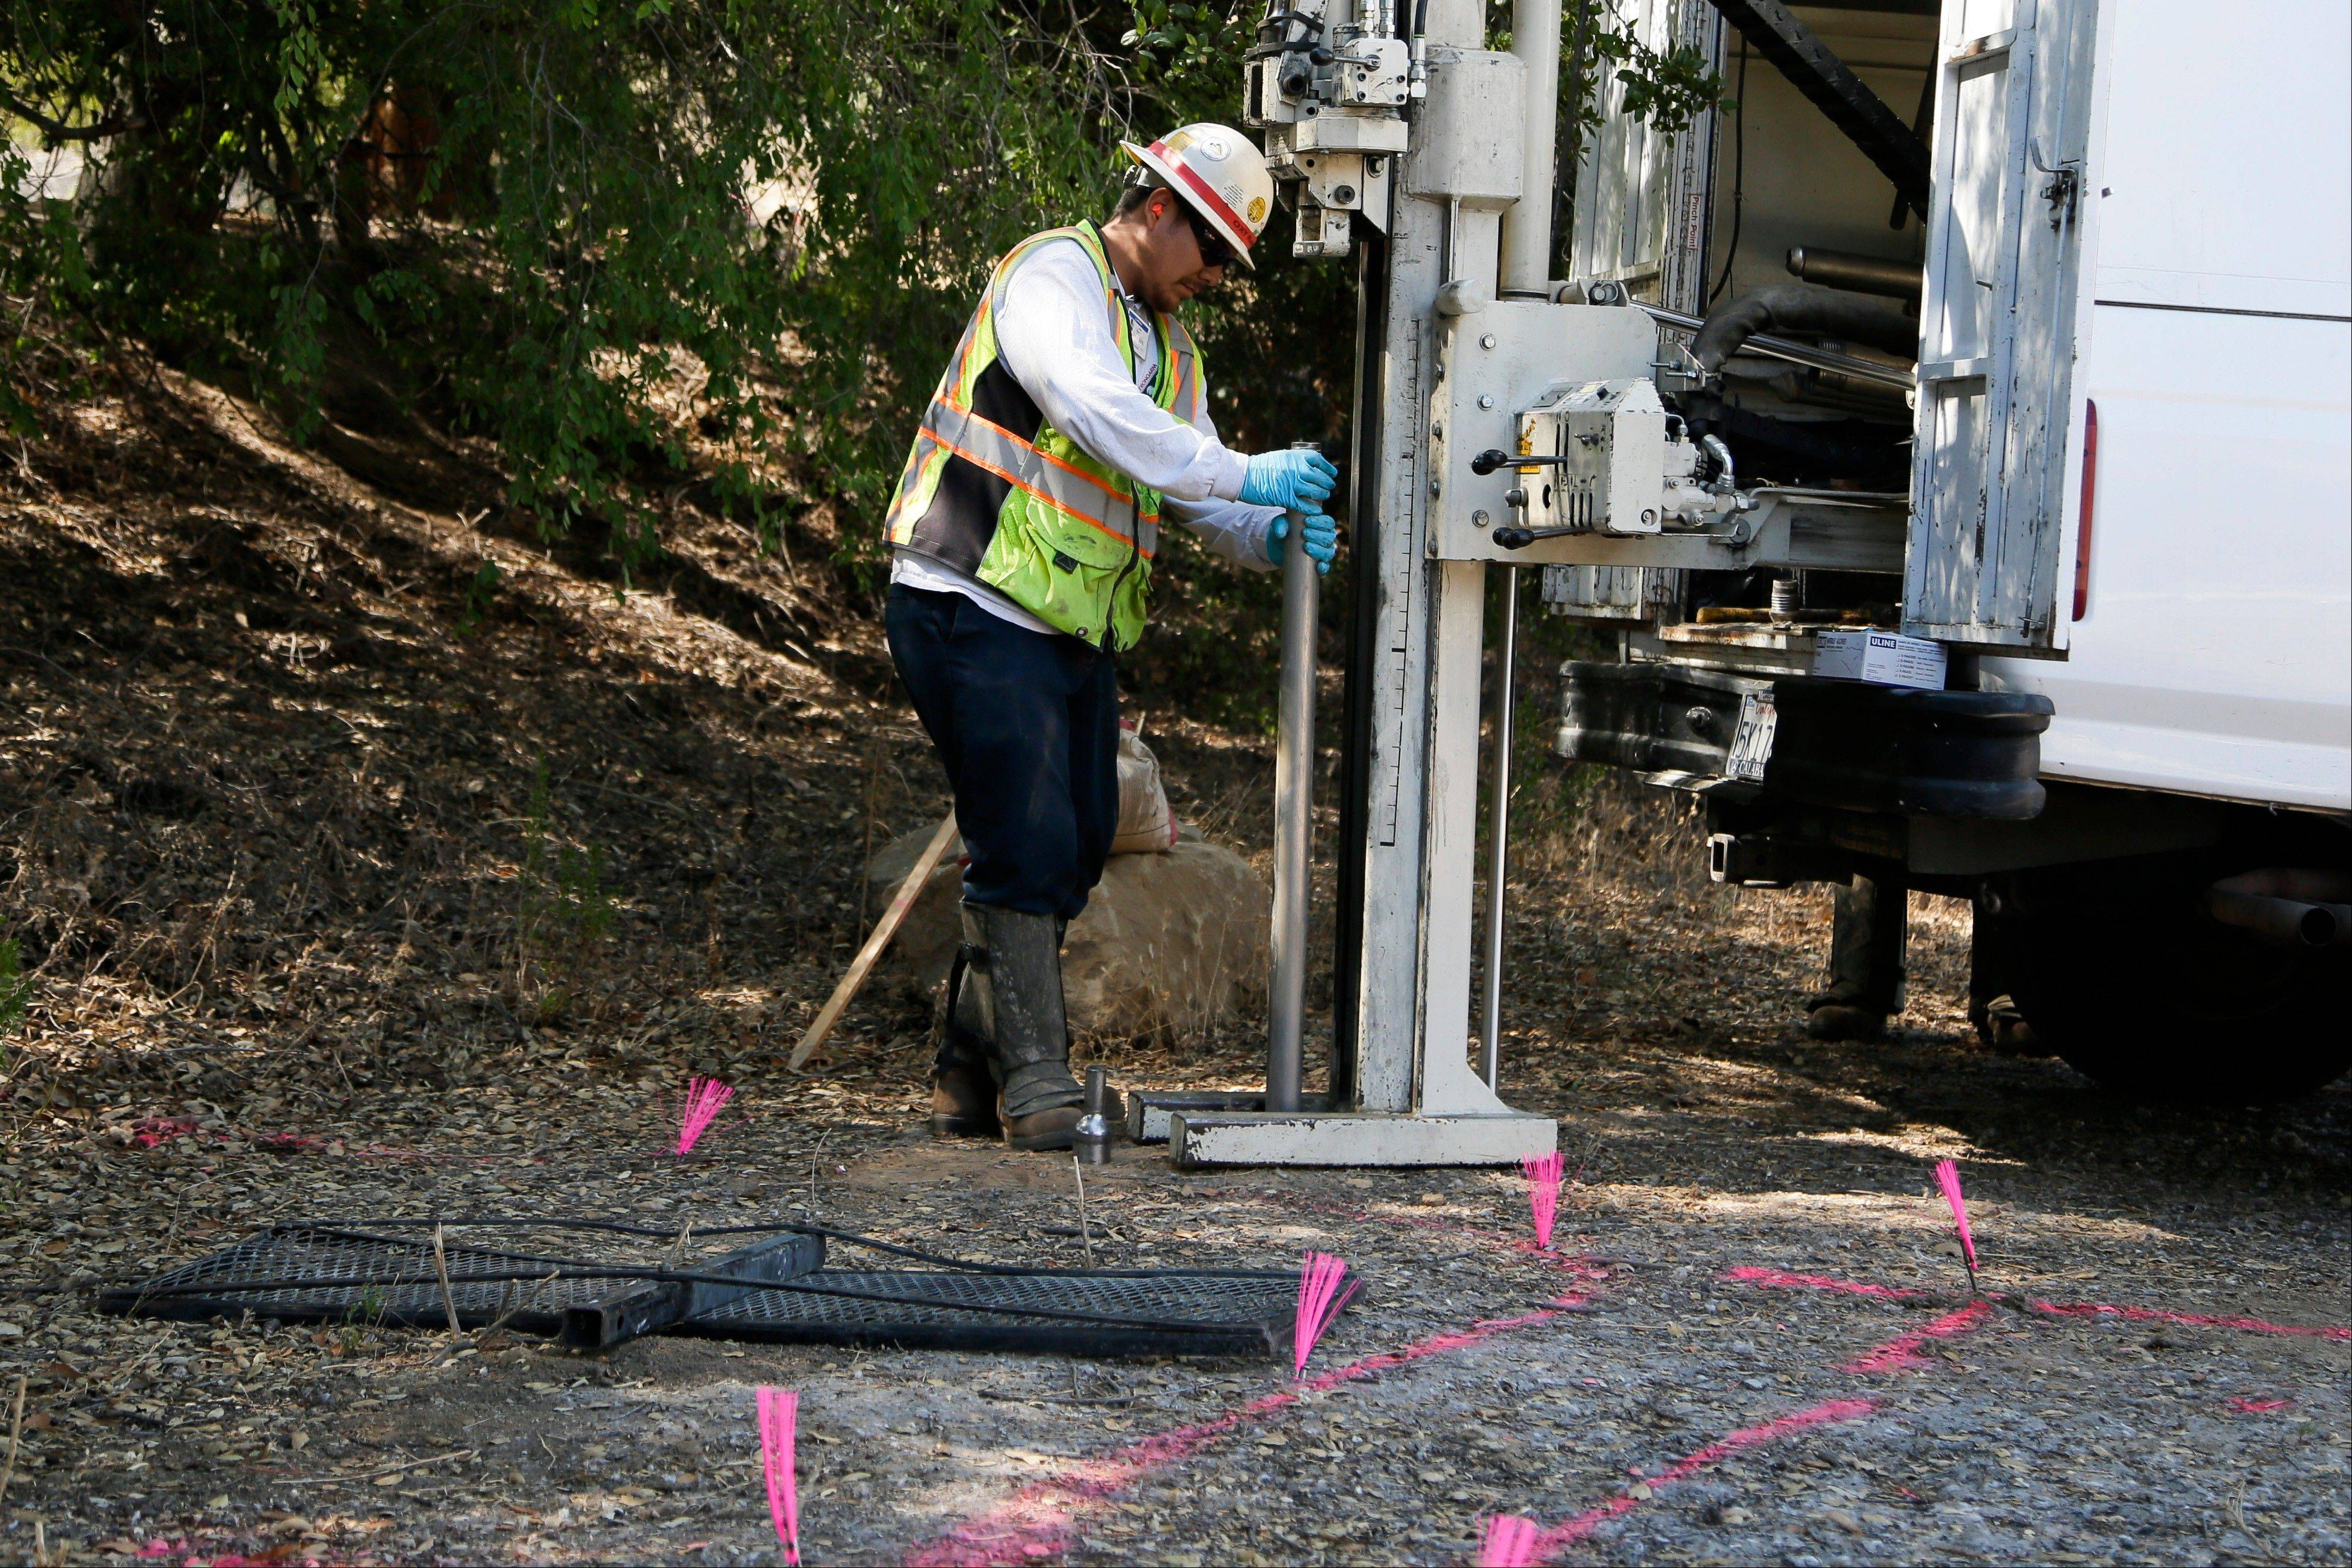 A worker drives a metal rod into the ground to collect soil samples at the Santa Susana Field Laboratory.